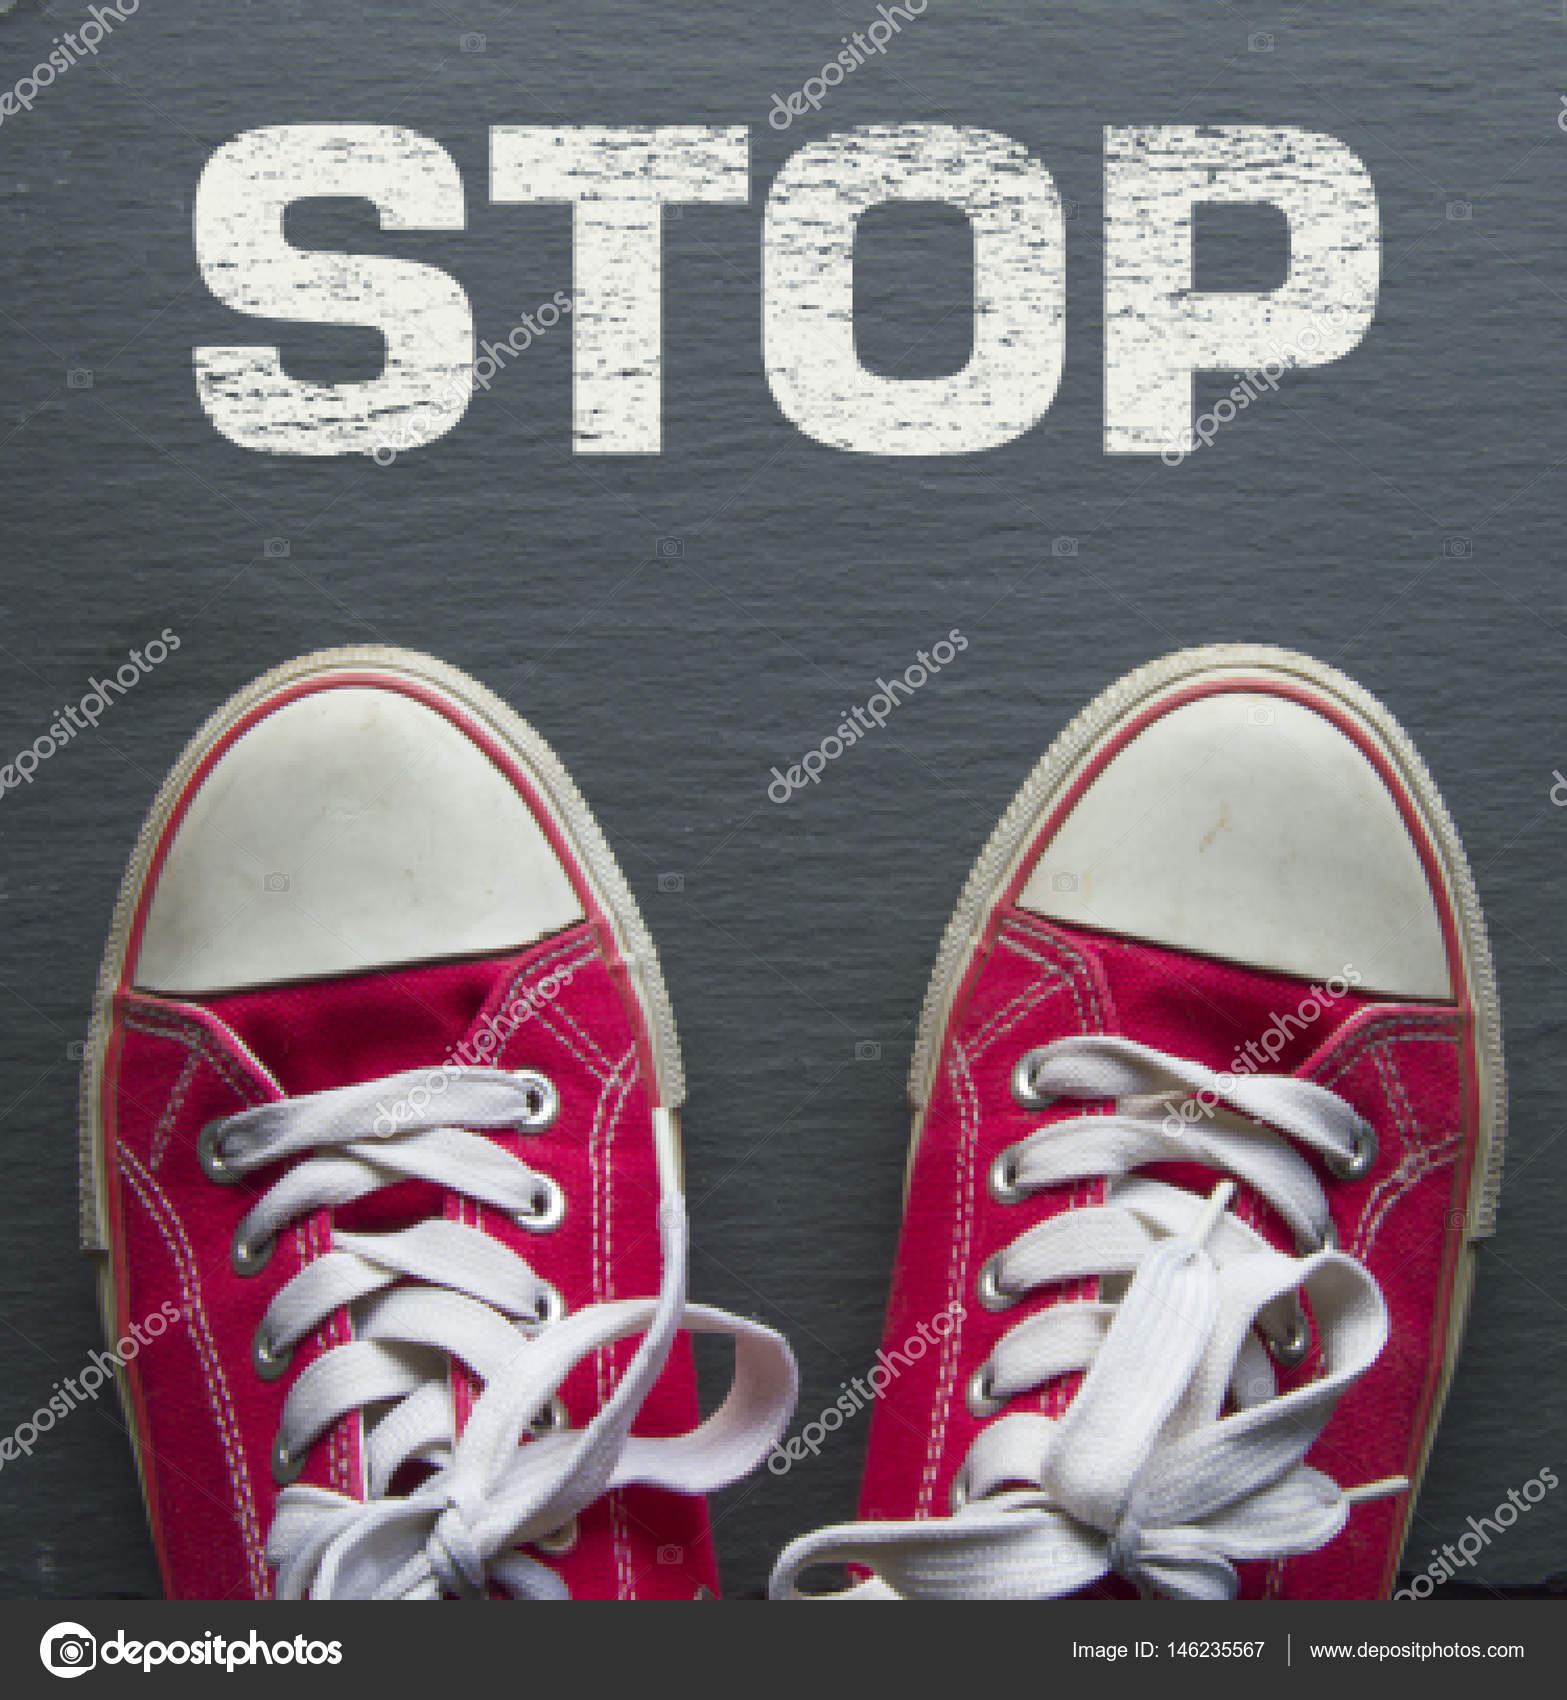 e84268ecf3929 red sneakers with stop sign — Stock Photo © lisa l  146235567